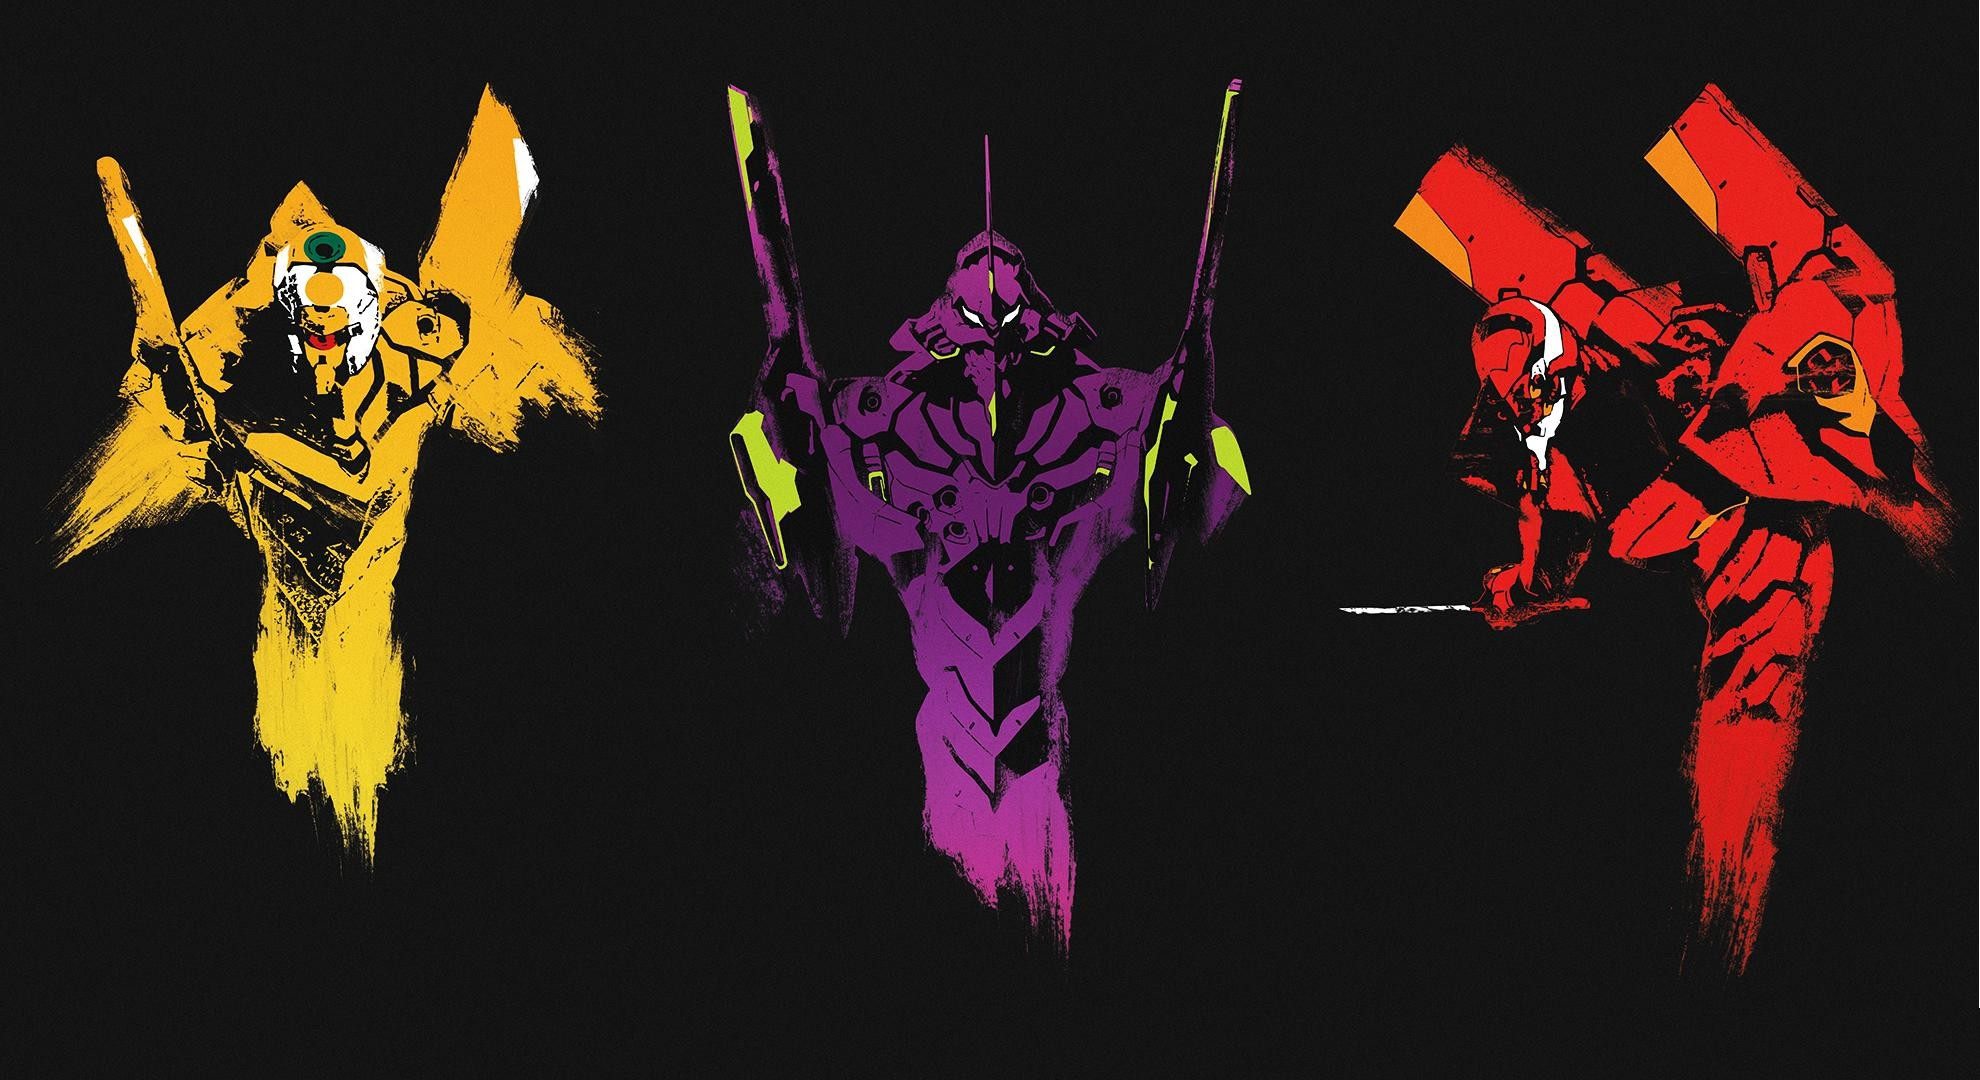 1980x1080 The Evangelion units! (x-post /r/Evangelion) ...